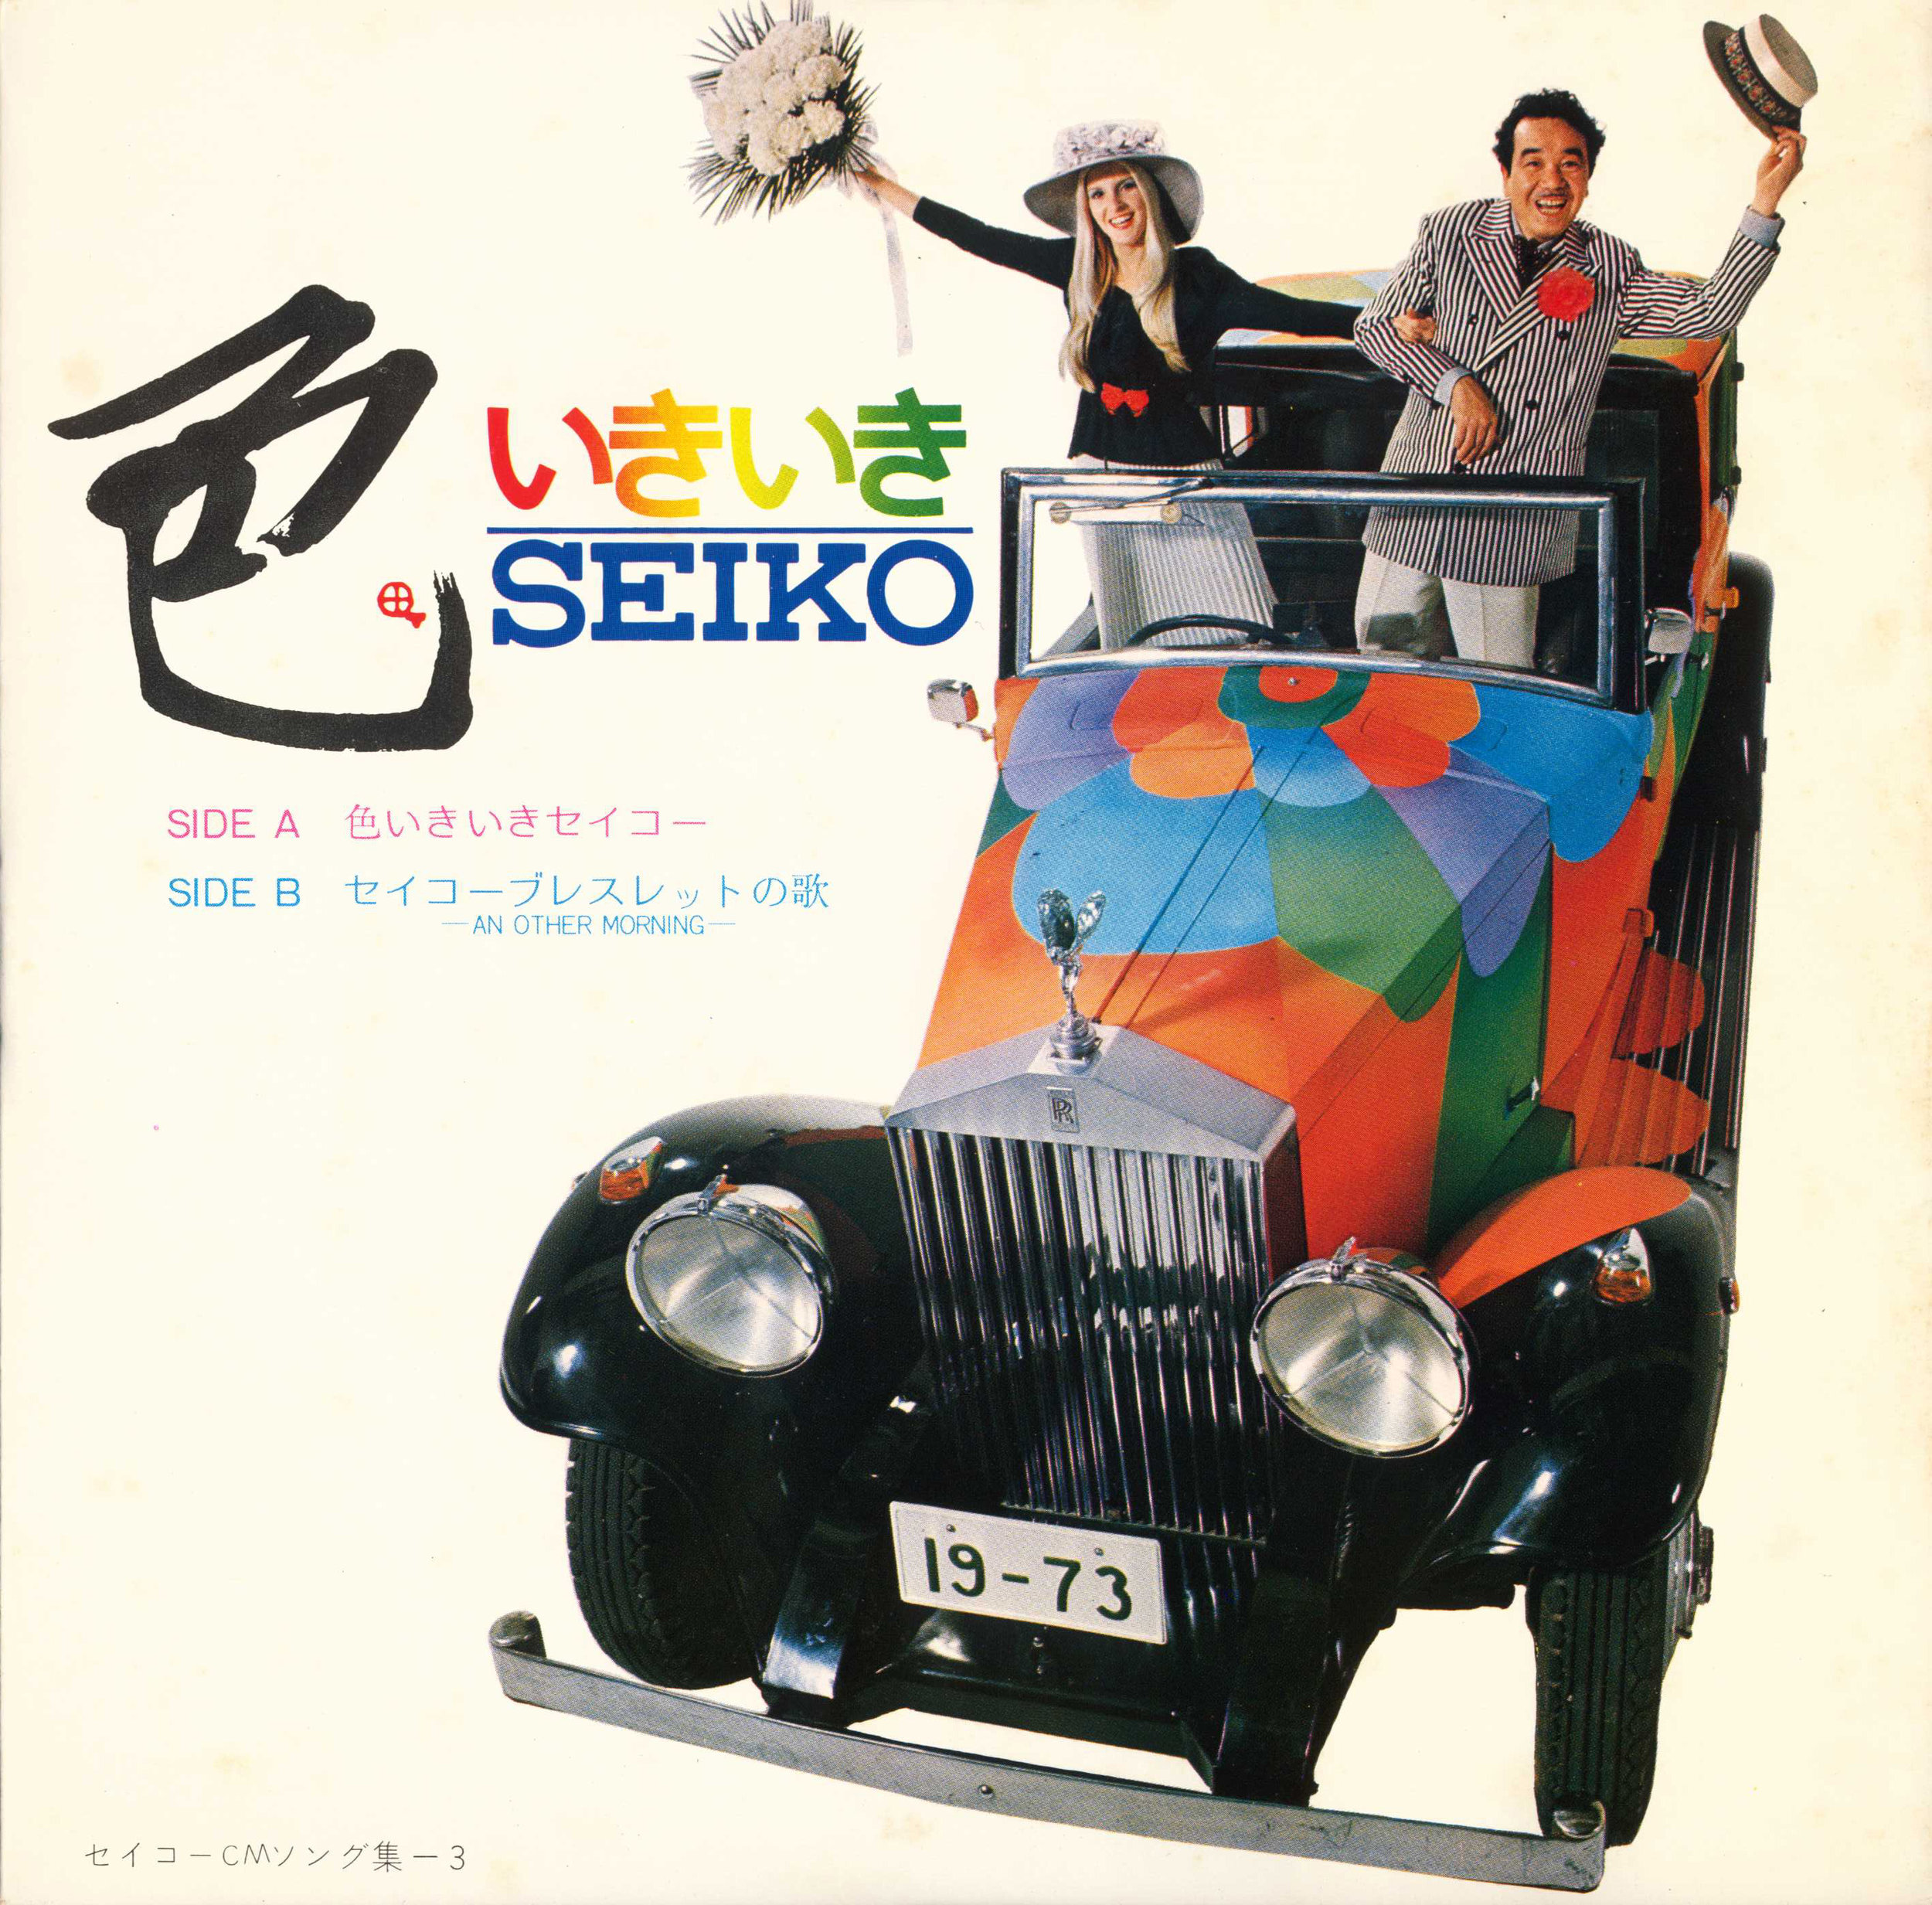 Track 1 - Color Lively Seiko